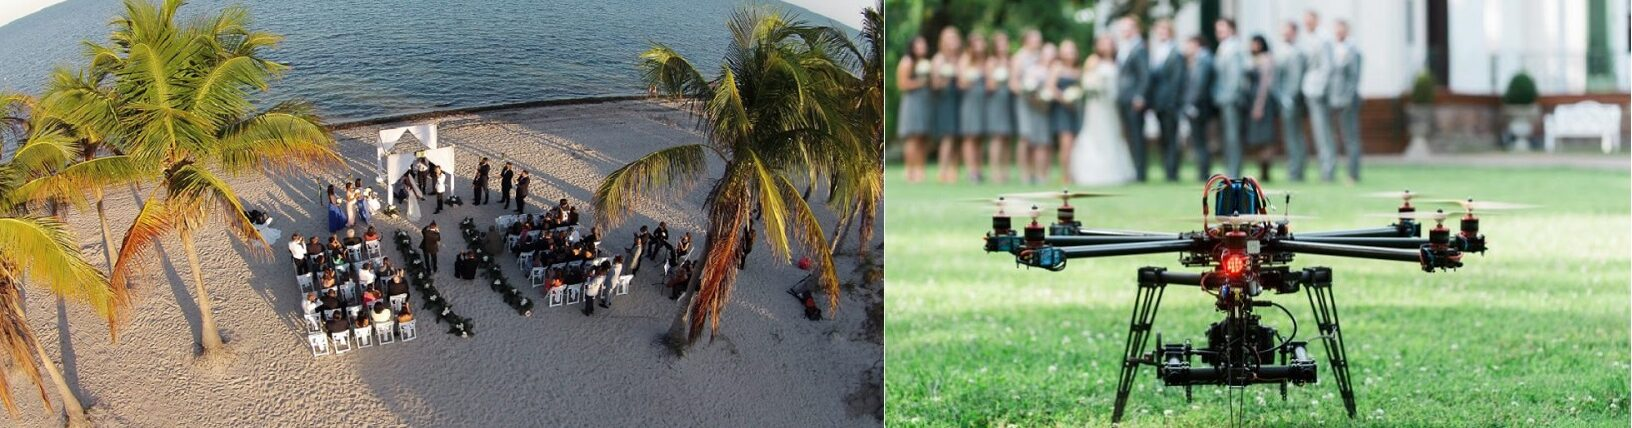 Houston Wedding Ceremony Aerial Drone Videography & Photography